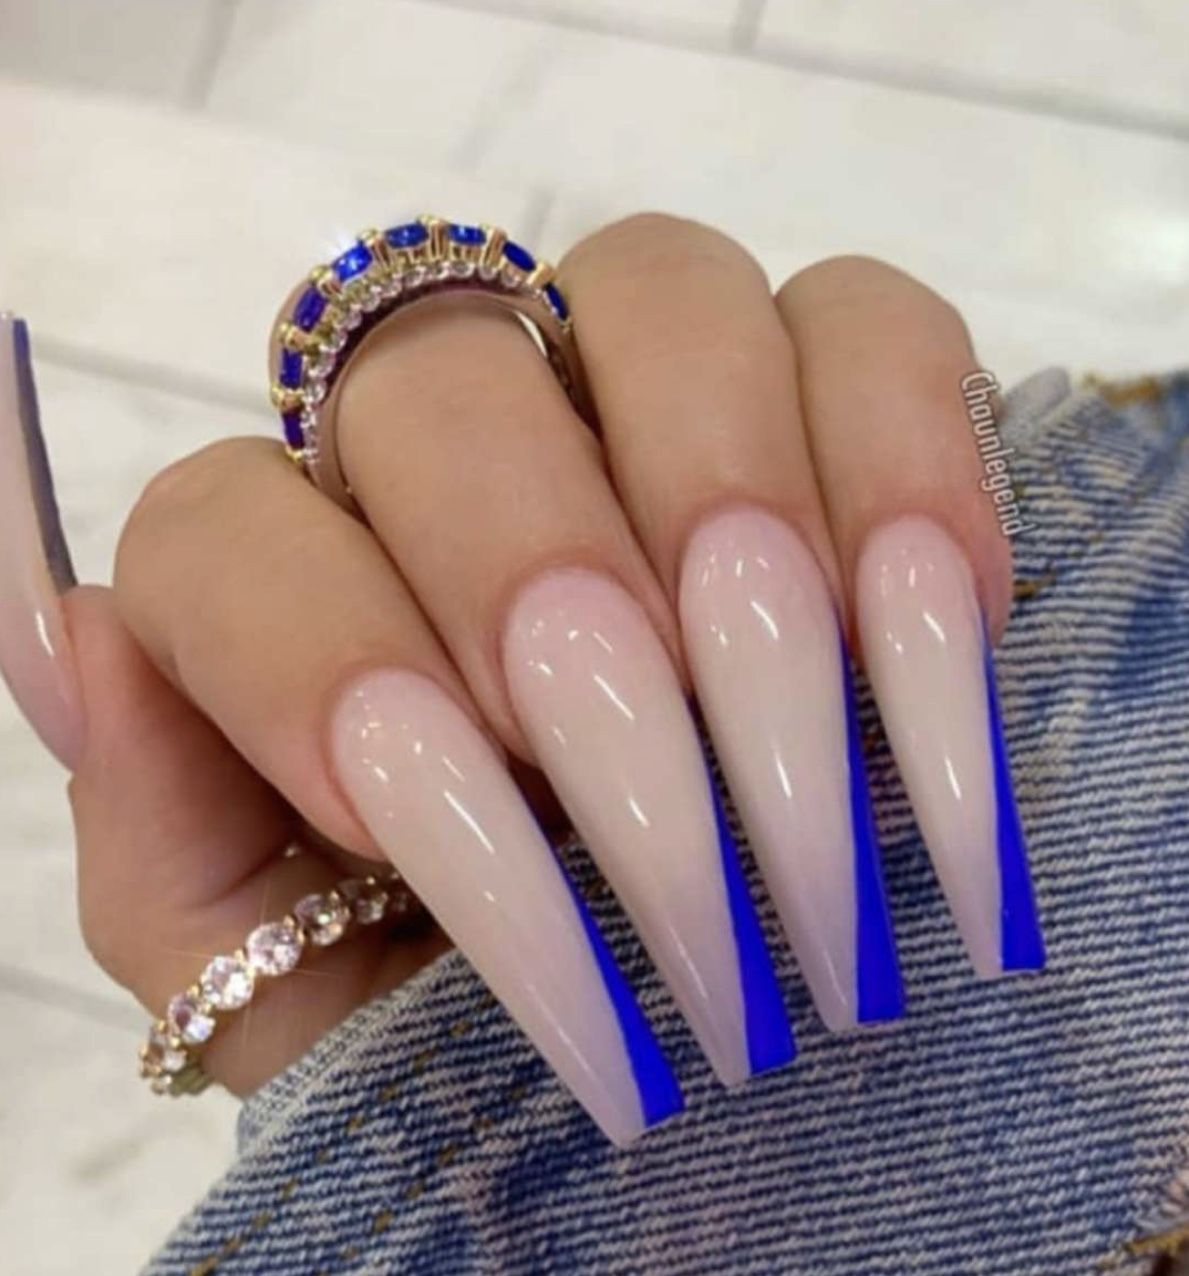 Pin By Beauty On Nails In 2020 Blue Ombre Nails Blue Acrylic Nails Long Acrylic Nails